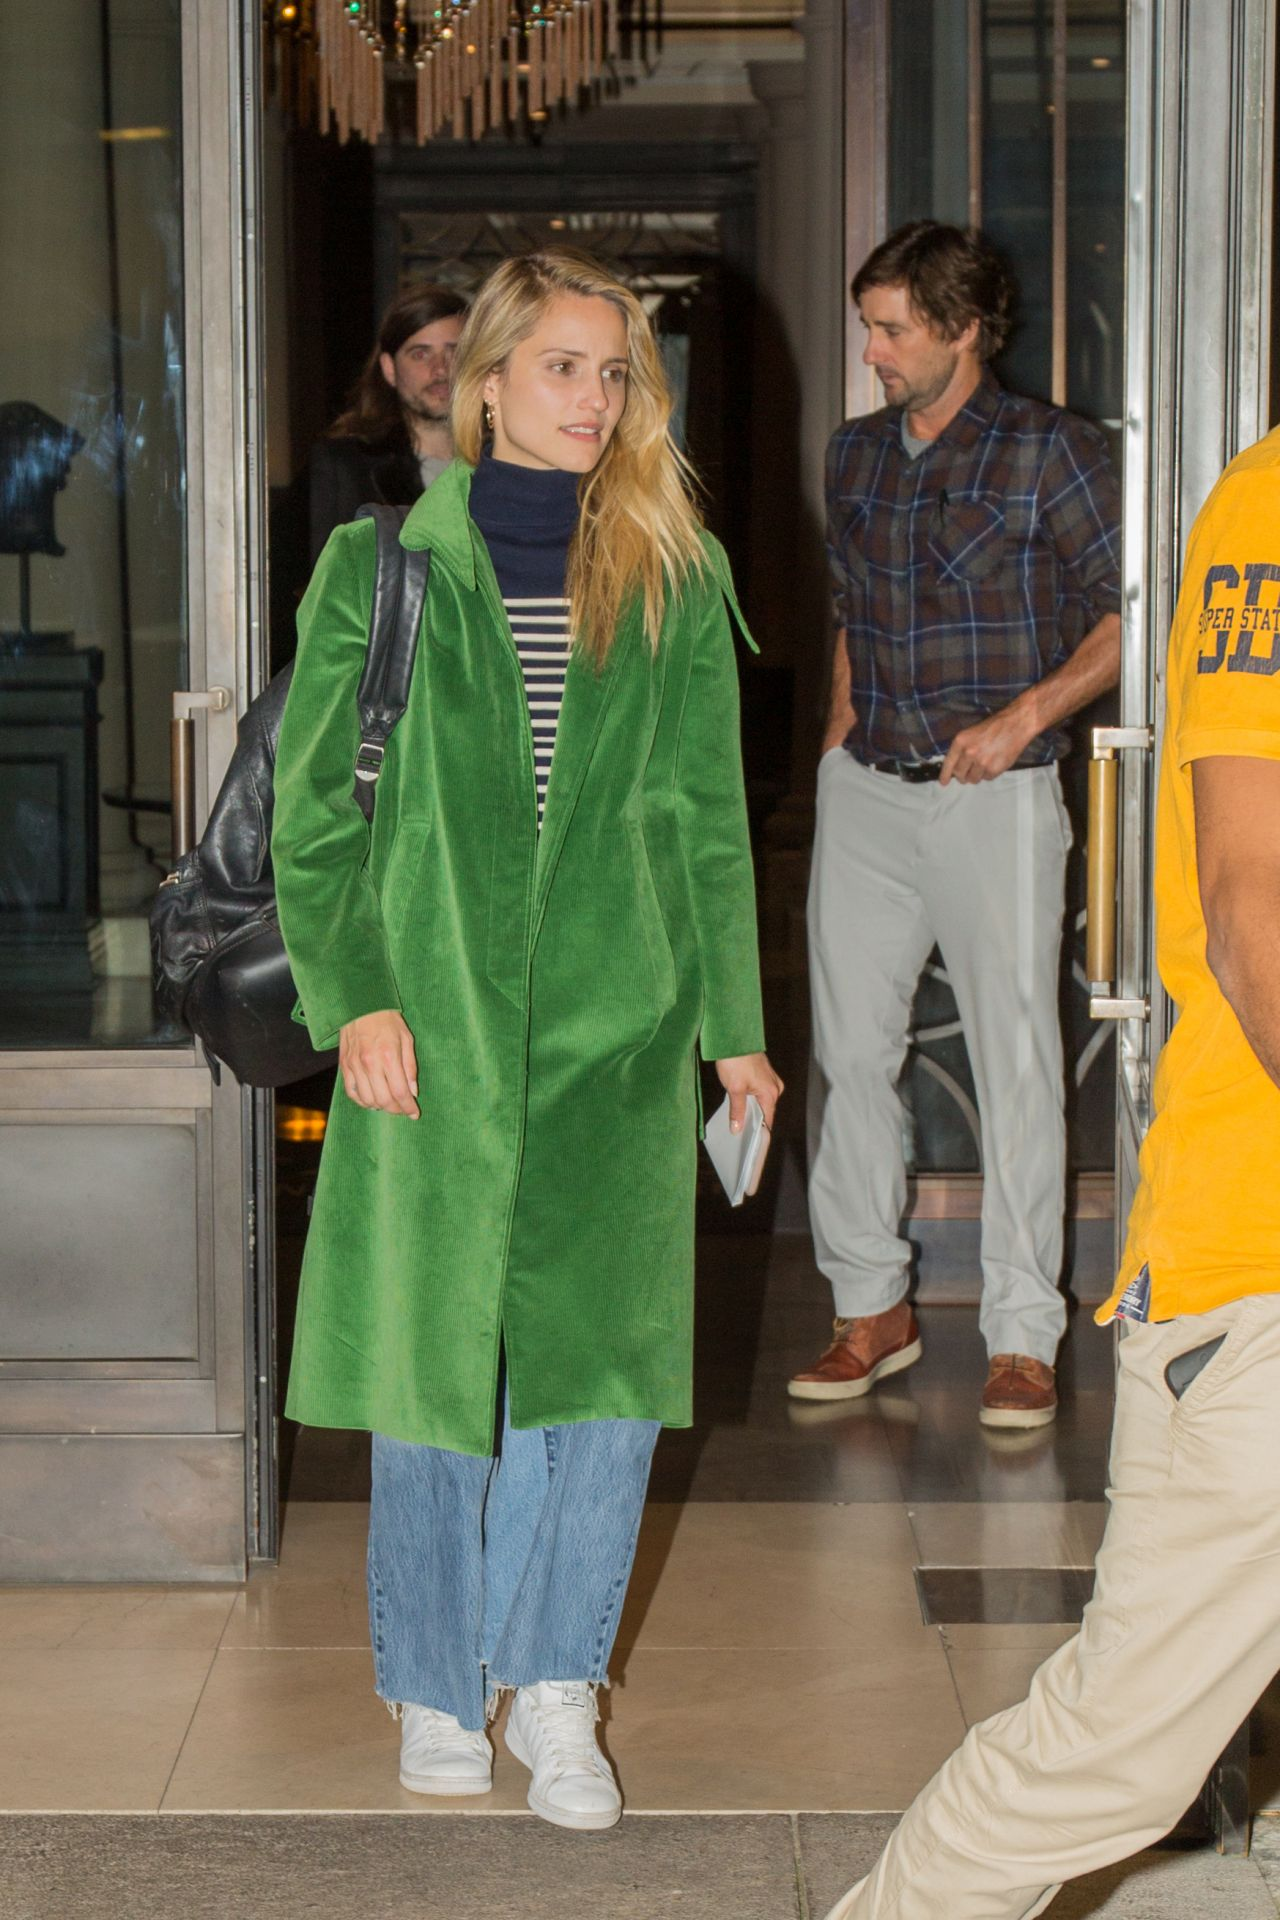 dianna agron in a forest green coat and denim skirt u2013 outside the titanic hotel in berlin